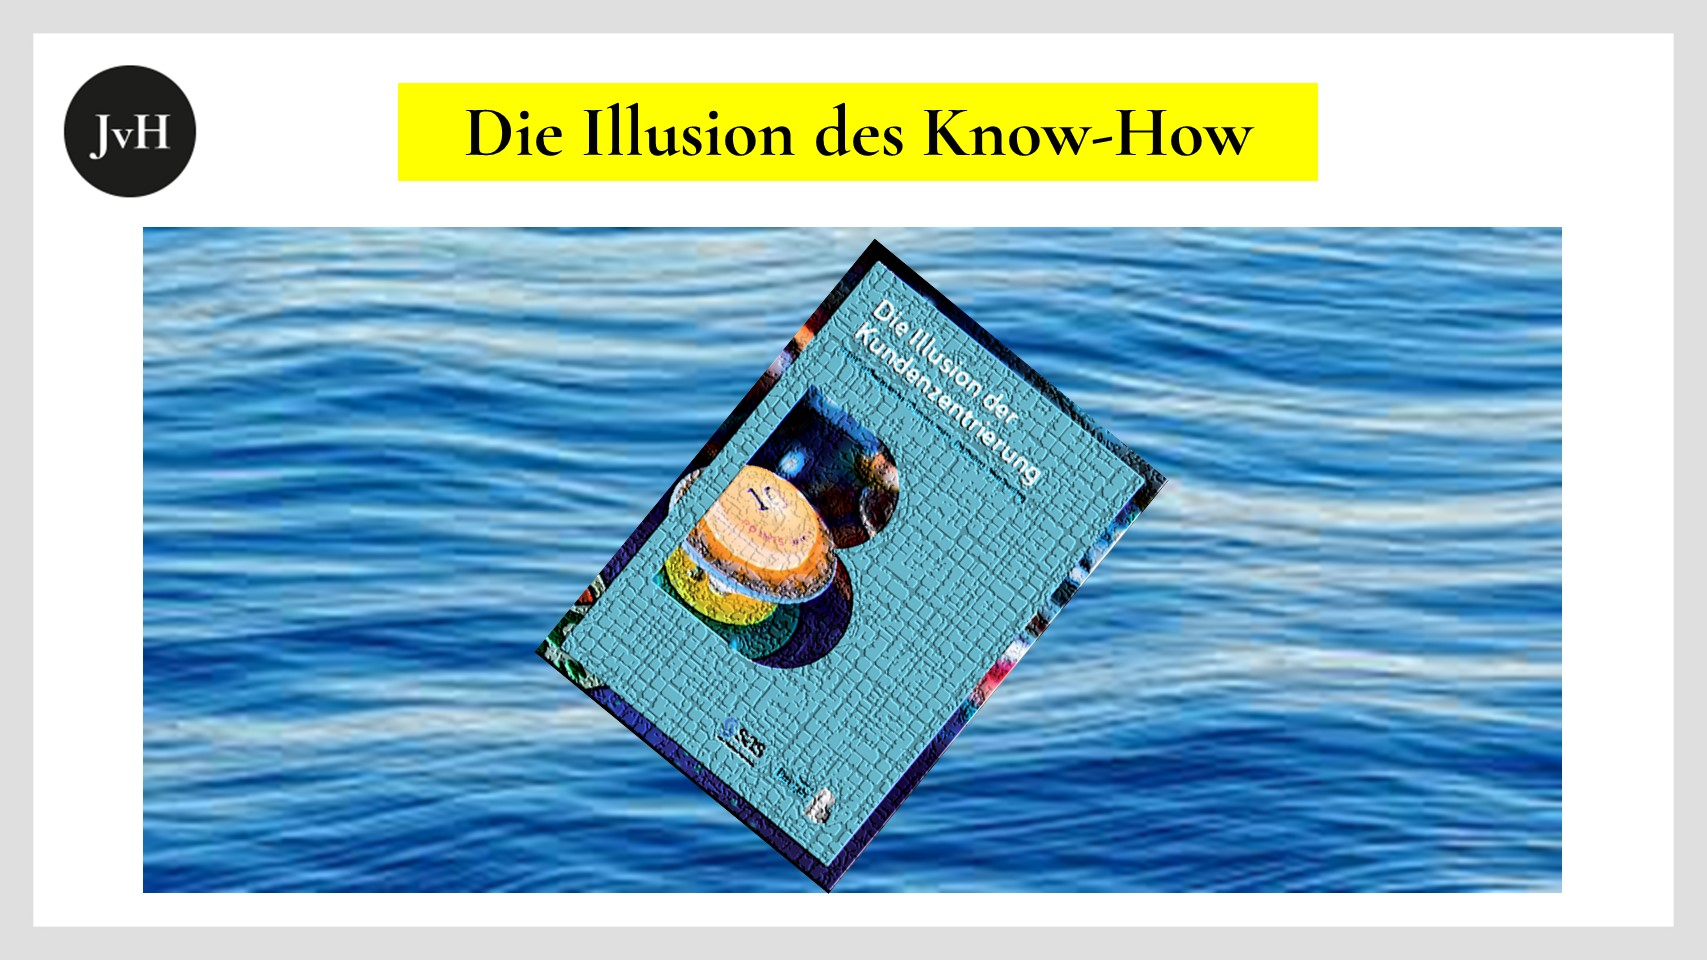 Die-Illusion-des-Know-How